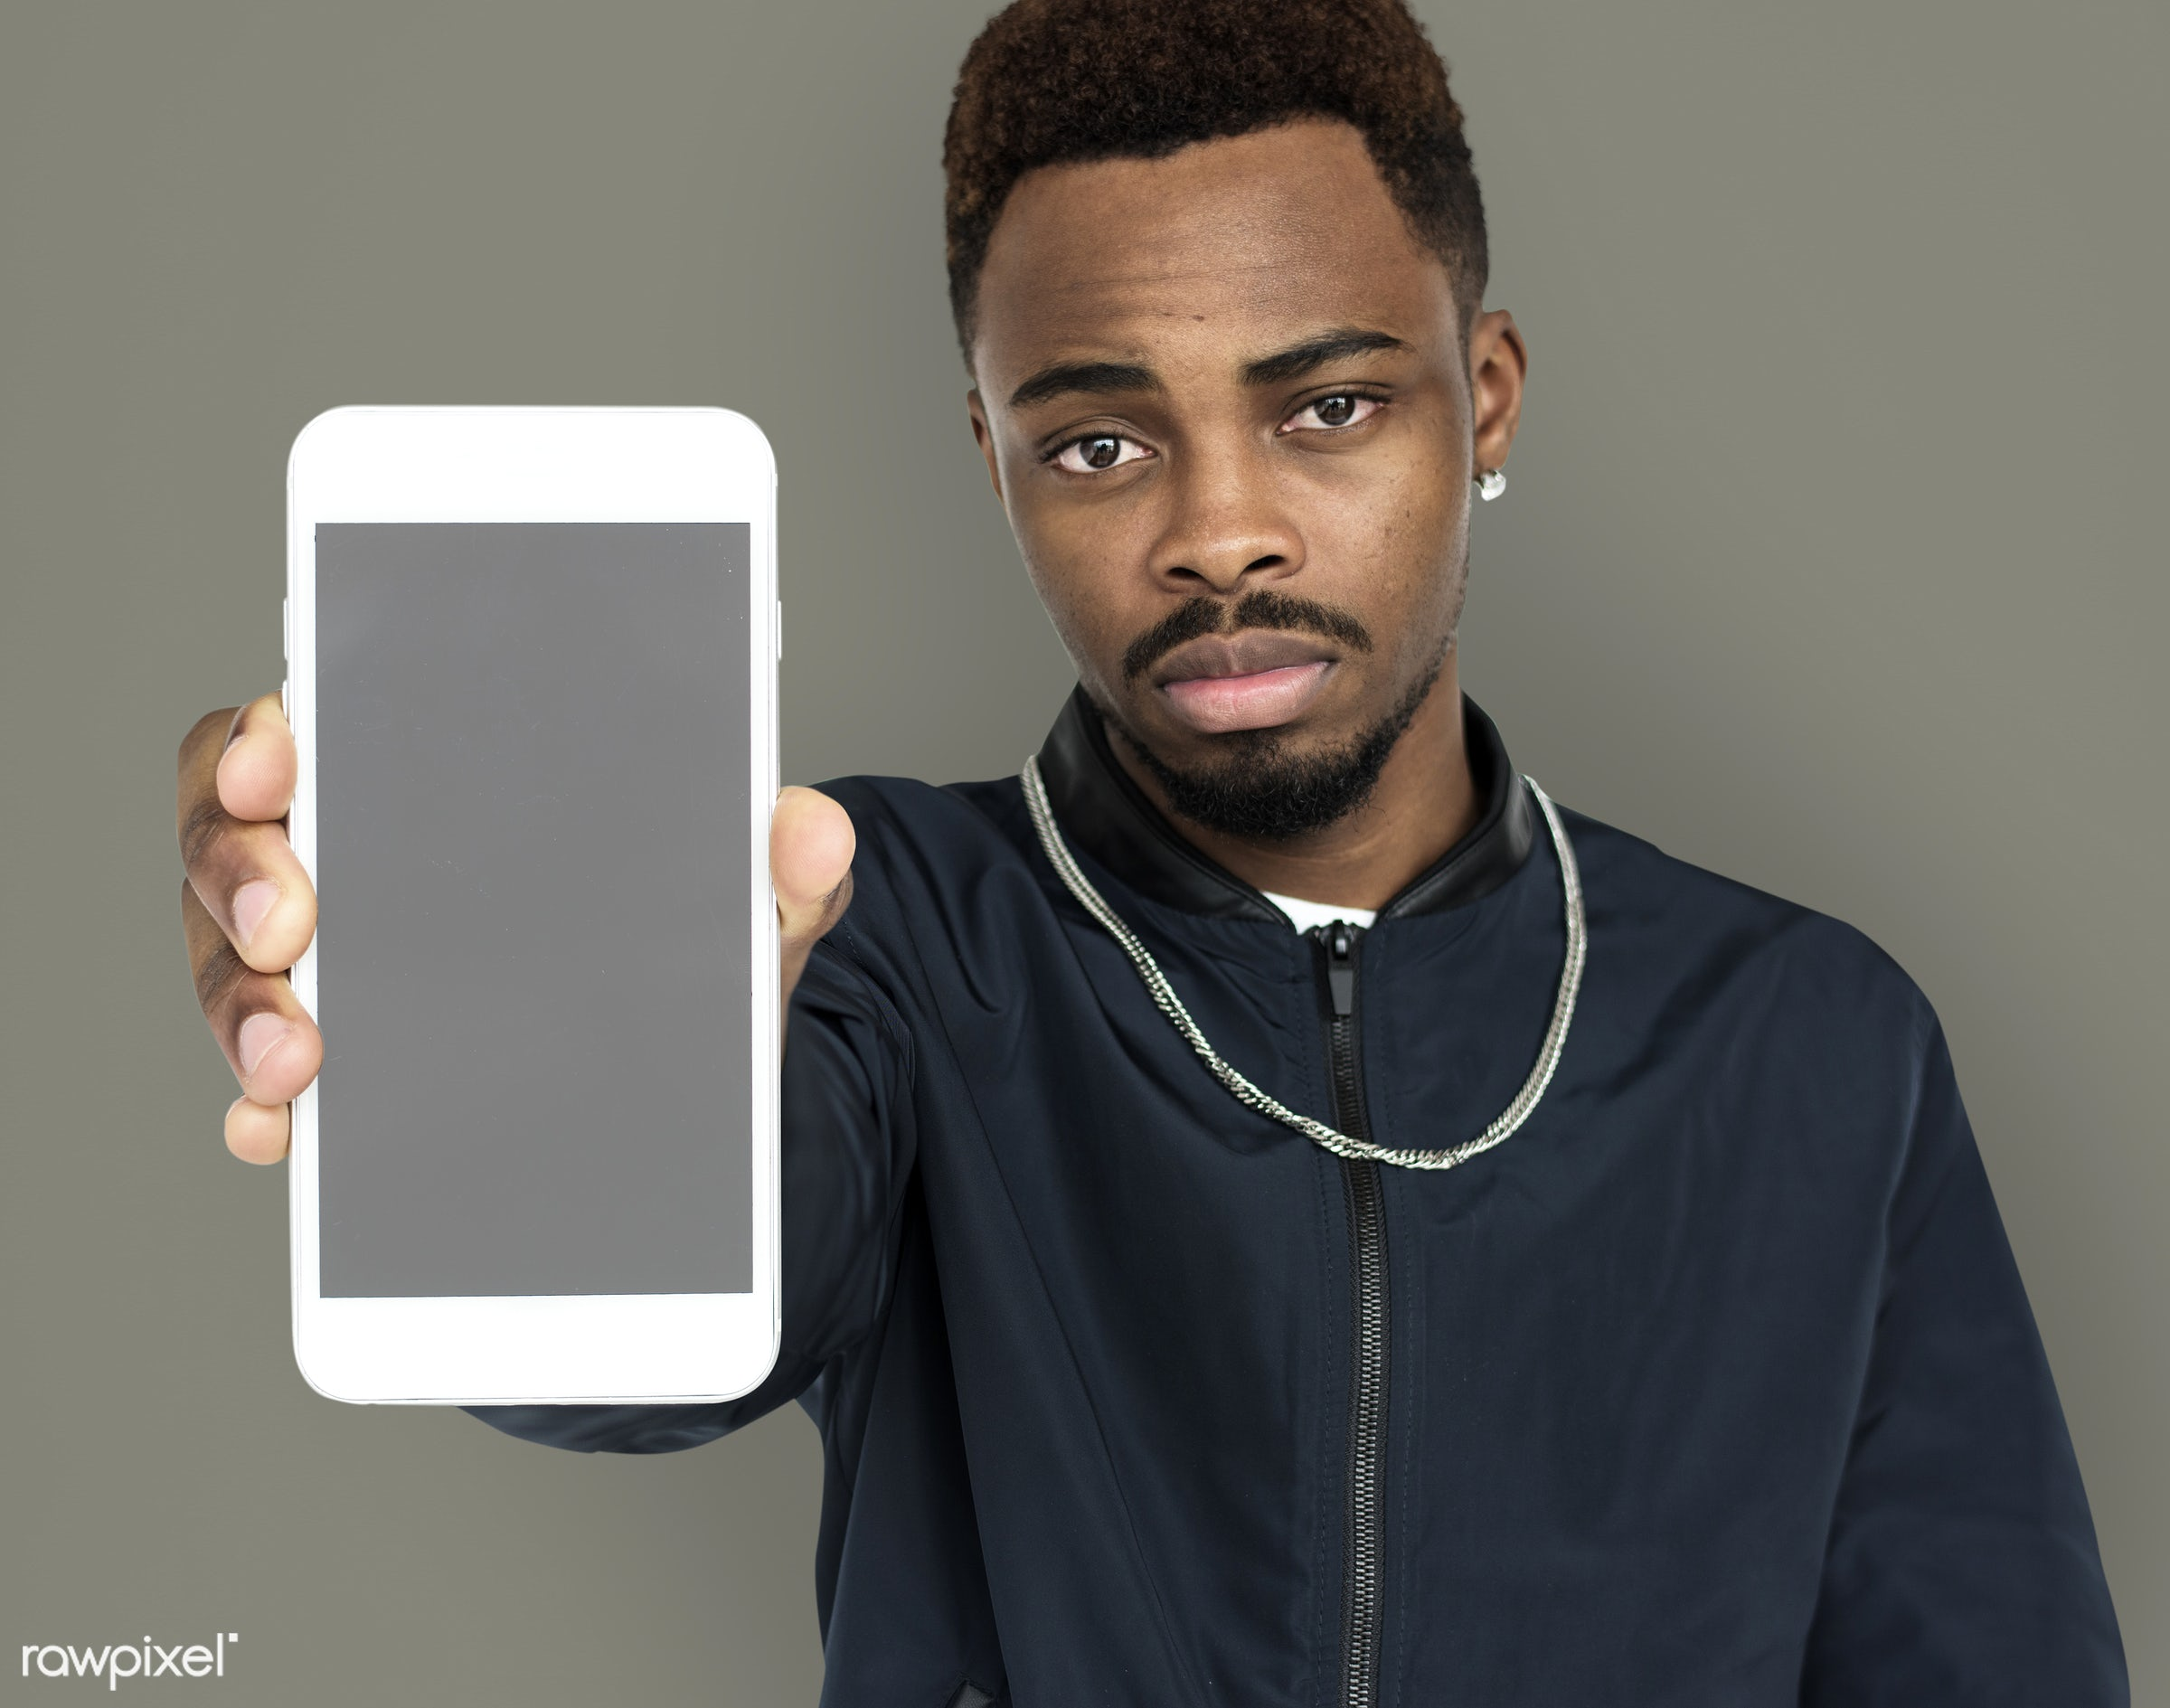 african descent, background, beard, black, communication, device, emotion, expression, focused, holding, holding phone,...